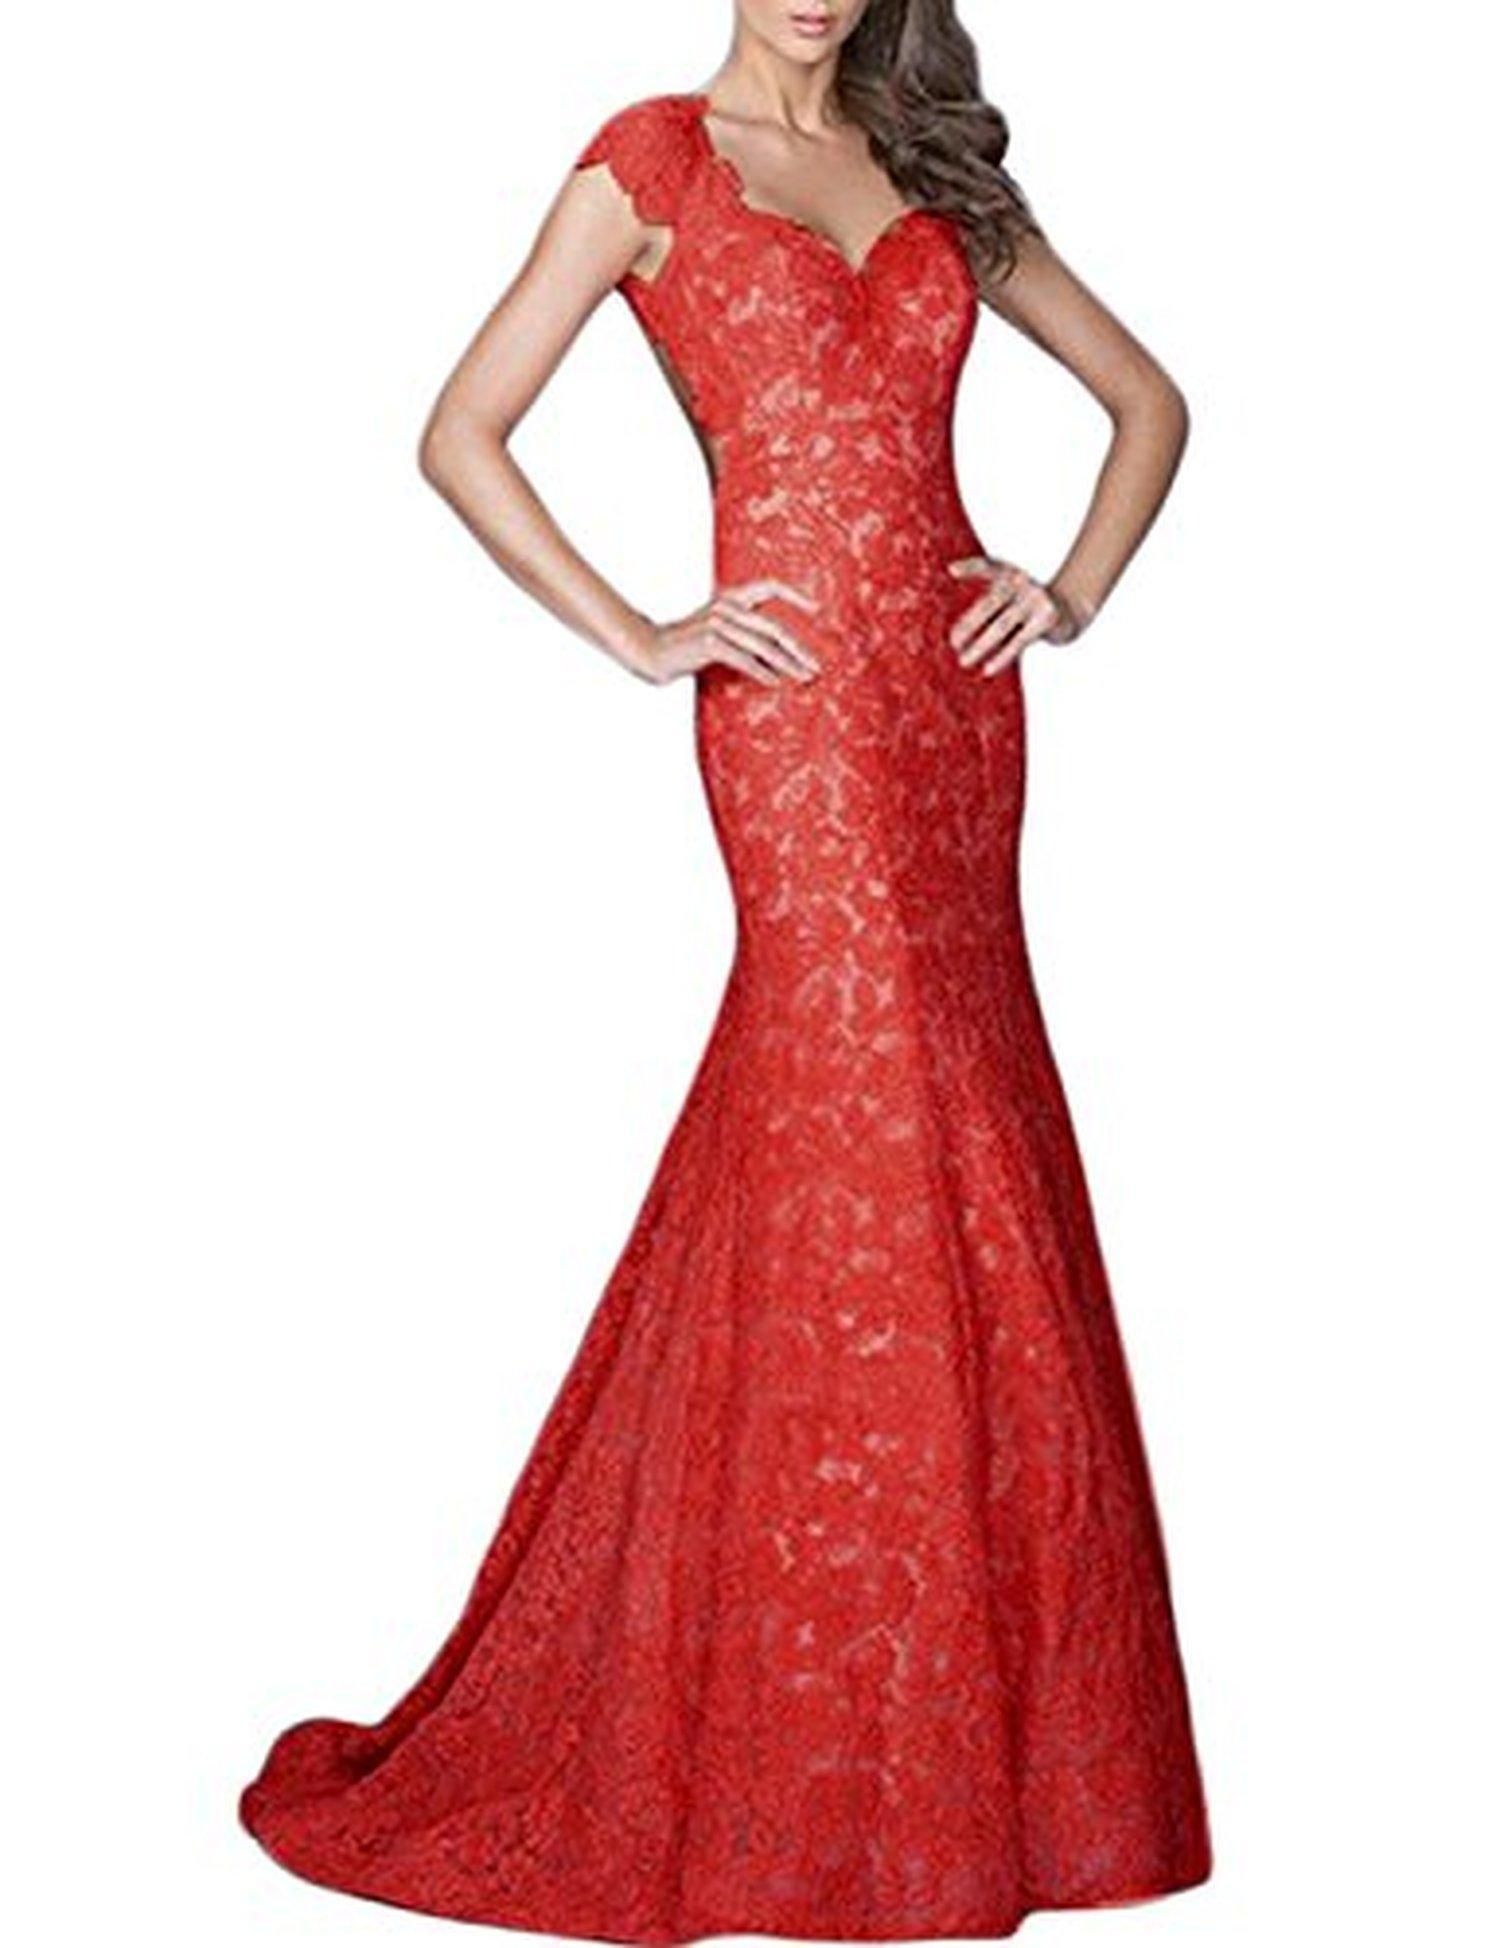 LucysProm Women's Prom Dresses Mermaid Open Back Lace with Sweetheart Dresses Size 2 US Red - Brought to you by Avarsha.com